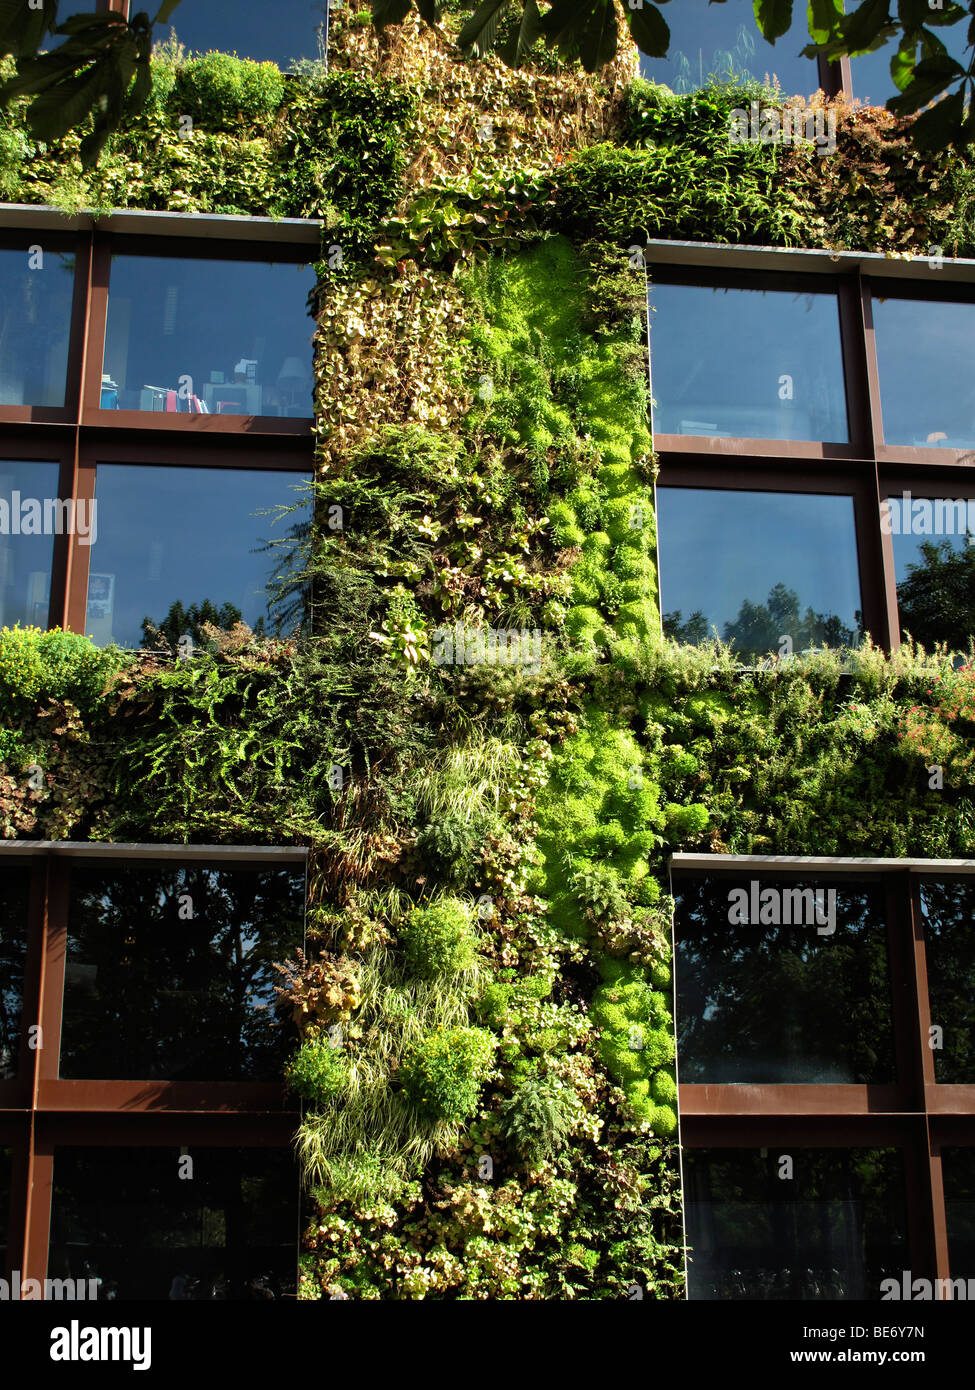 Musee Branly Photos & Musee Branly Images - Alamy